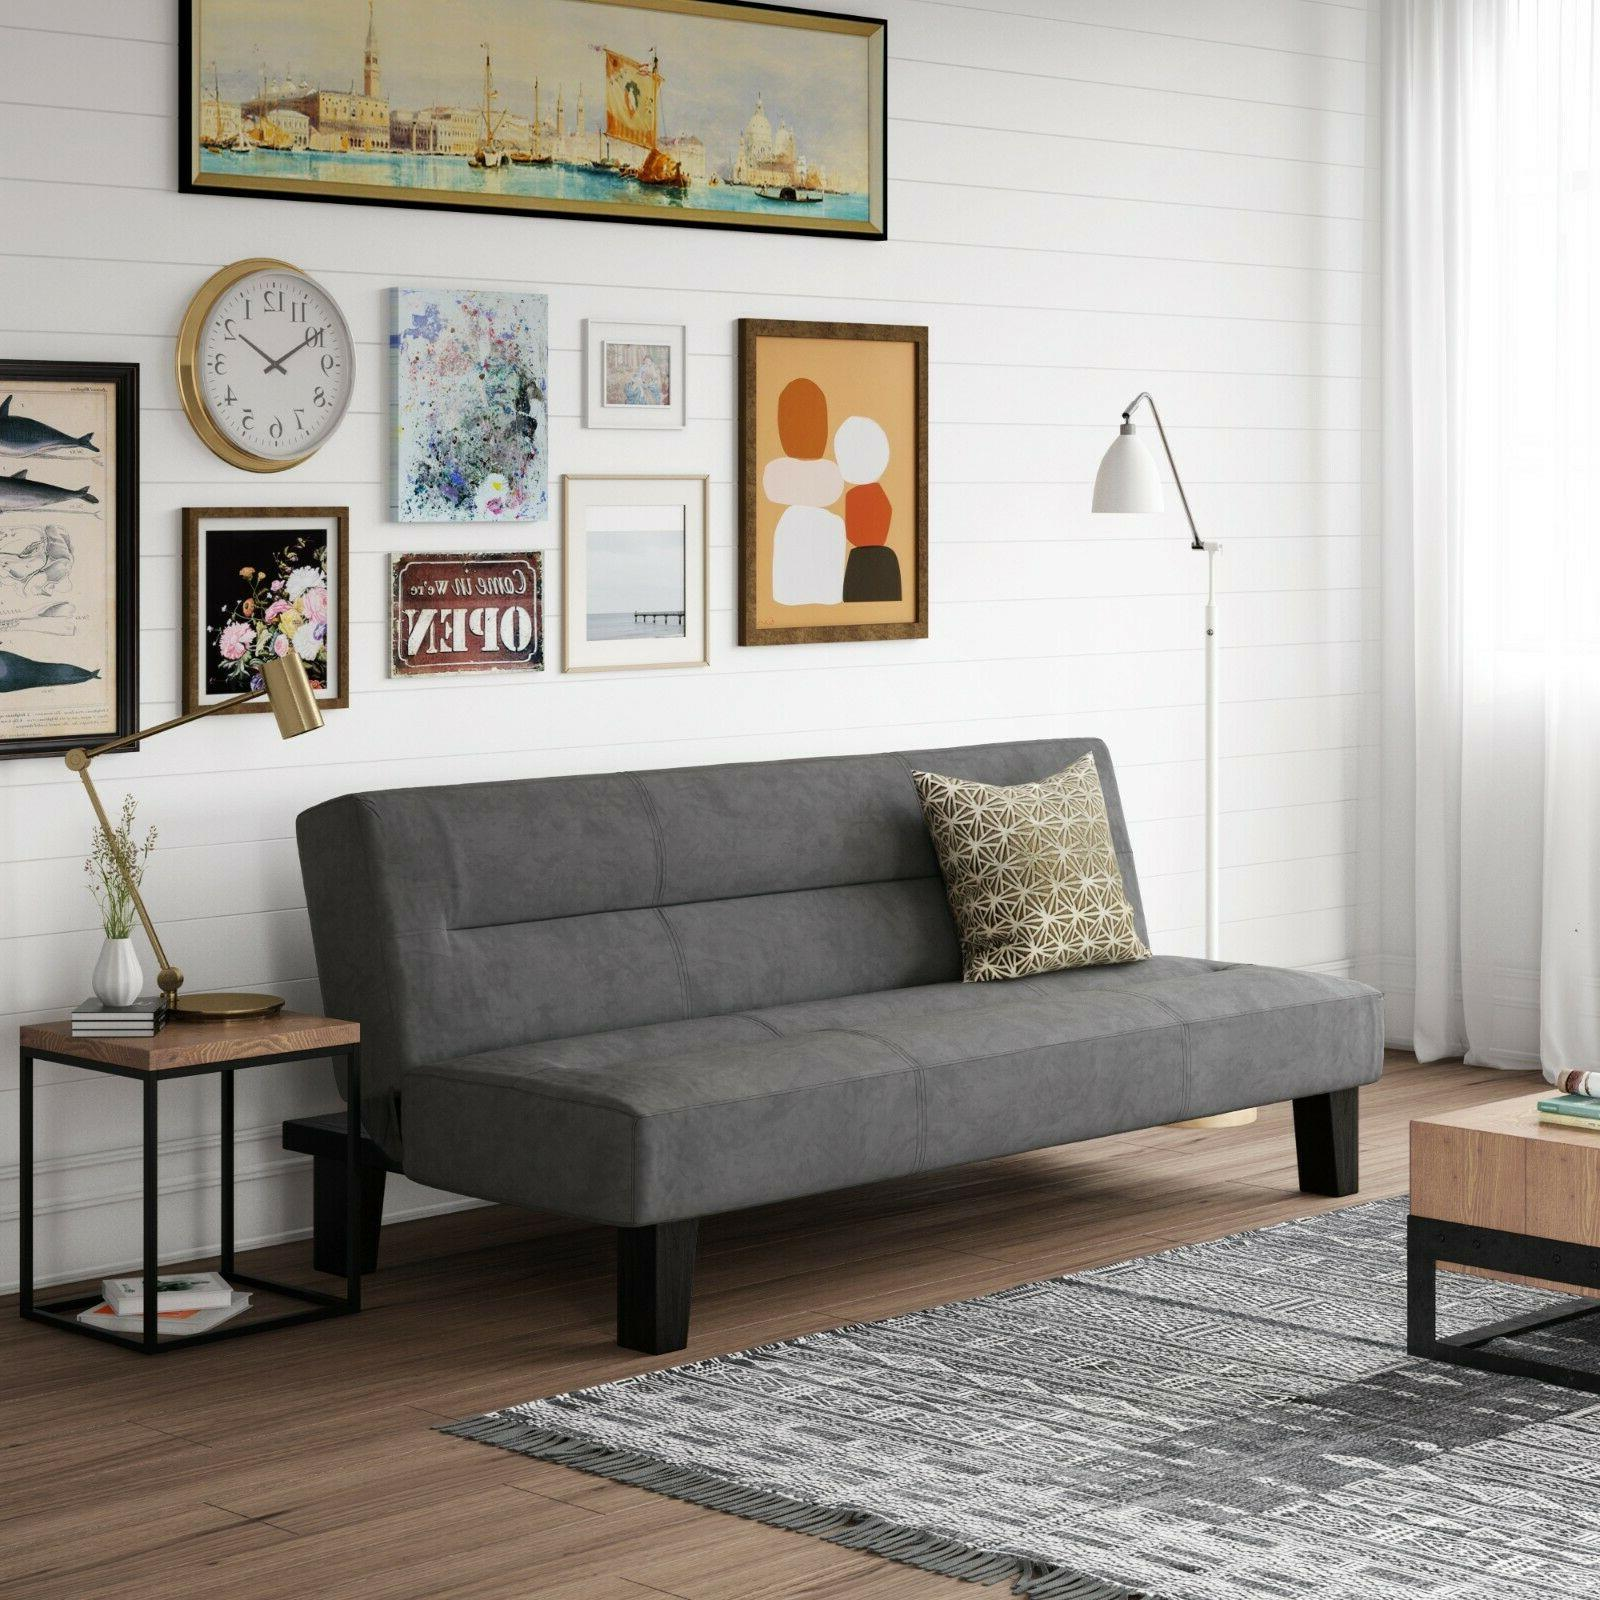 Futon Couch Small Microfiber Overnight Guests